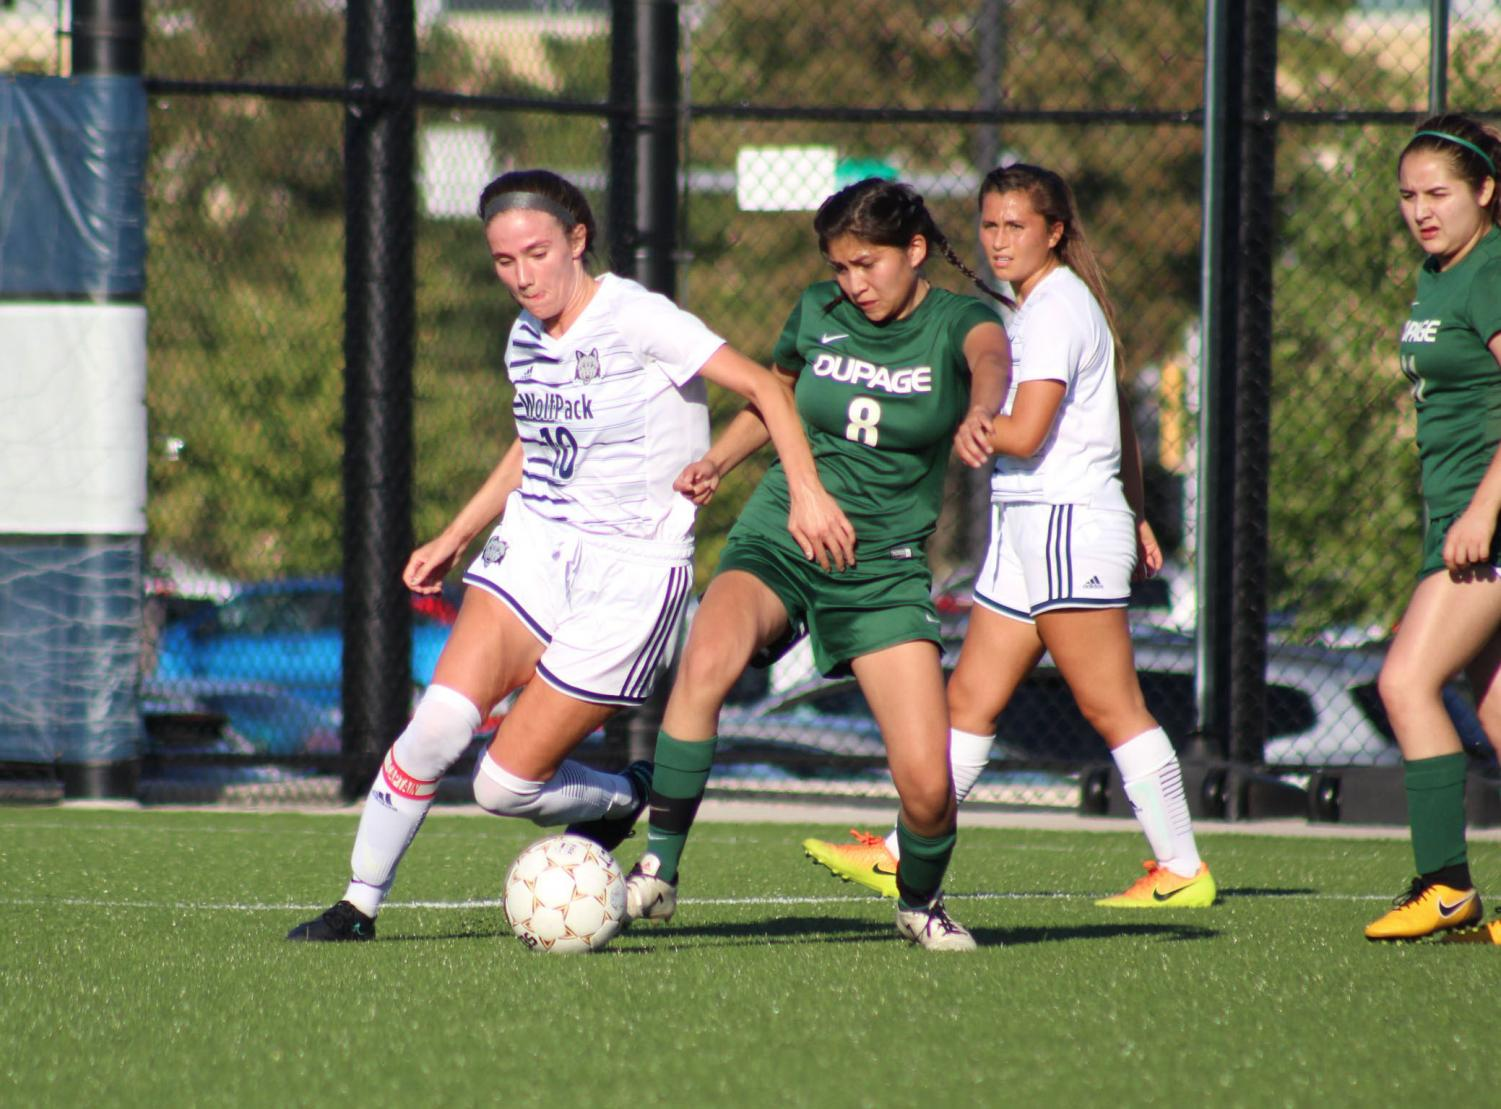 Madison College's Peyton Trapino fights a College of DuPage player for the ball during her team's 5-0 win at home on Sept. 10. The WolfPack women's soccer team is now 7-1 overall and 6-0 in conference play.